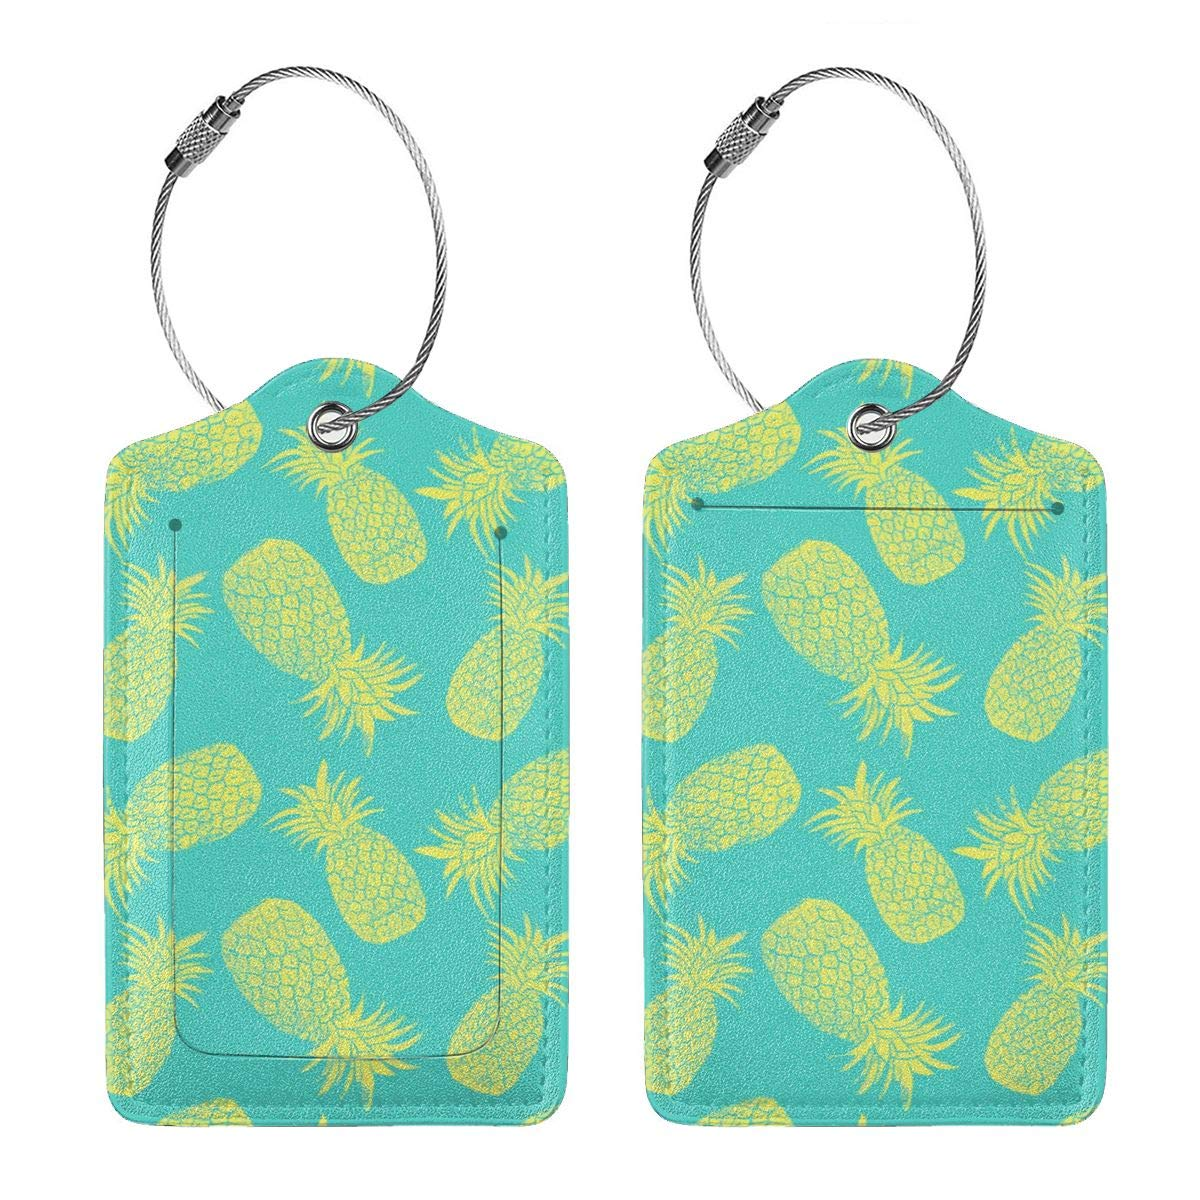 Leather Luggage Tags Full Privacy Cover and Stainless Steel Loop 1 2 4 Pcs Set Key Tags for Backpacks Travel Bags Gift Pineapple Pattern 2.7 x 4.6 Blank Tag